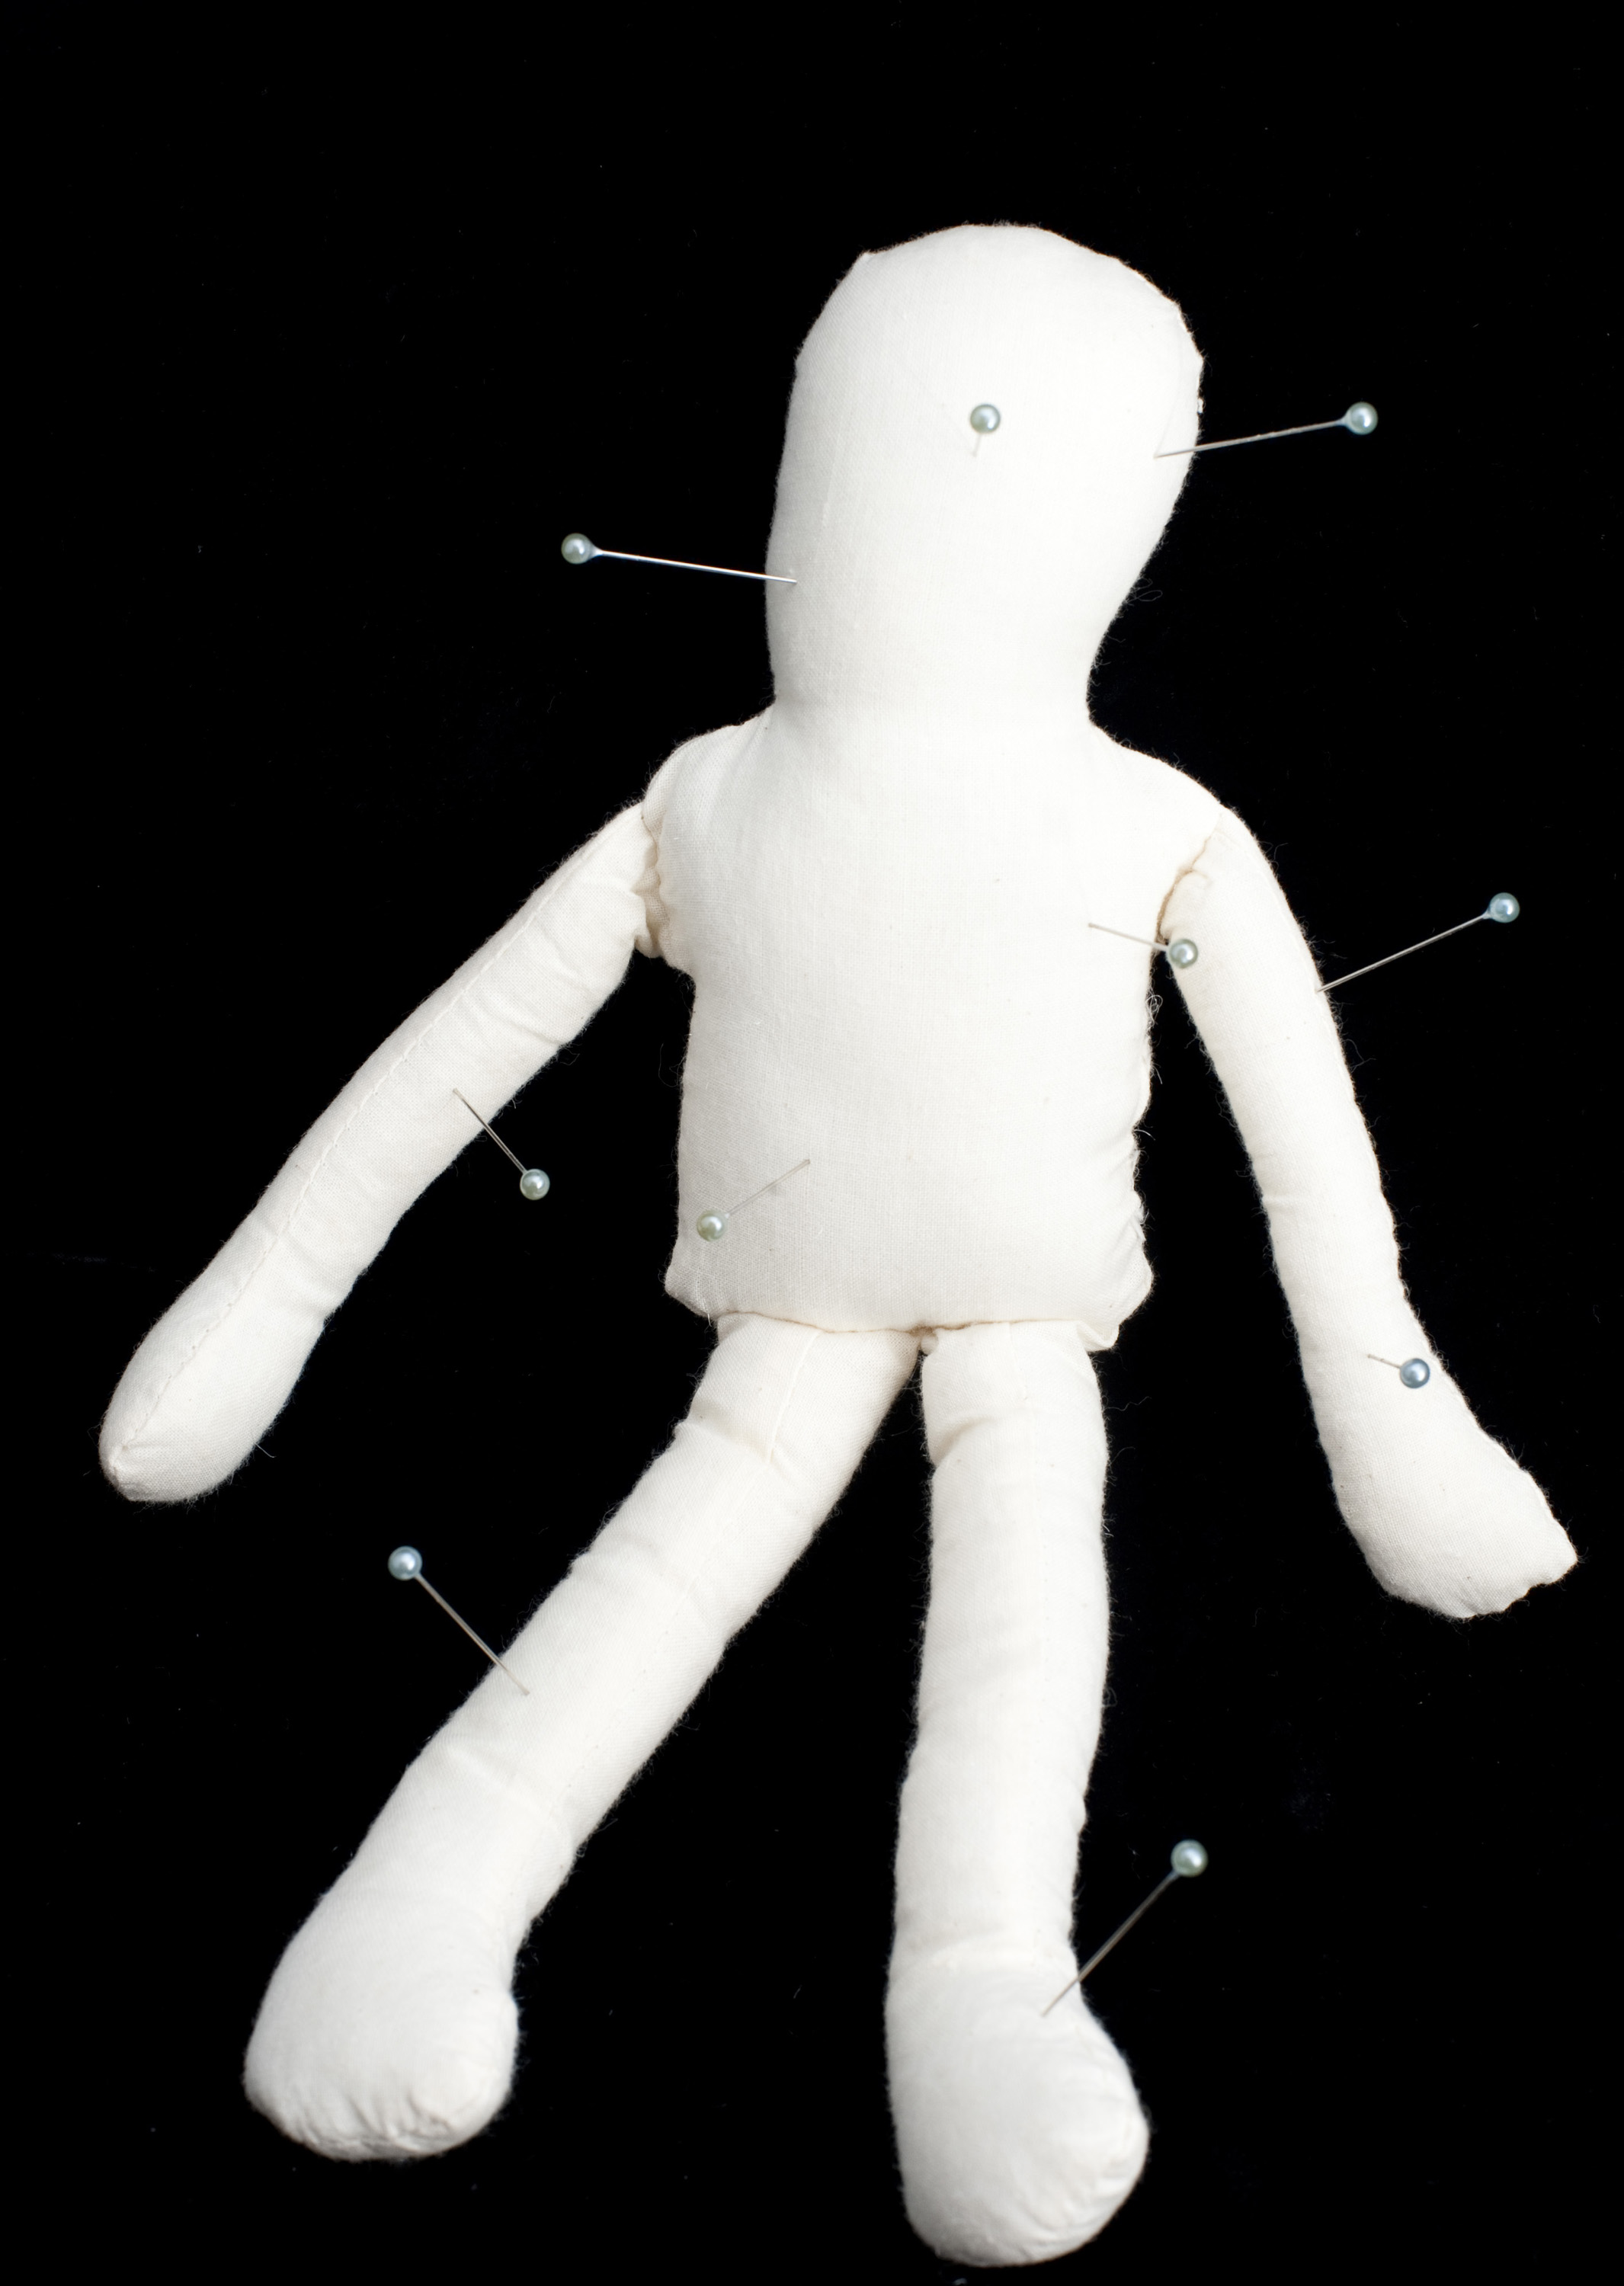 bad magic - a white voodoo doll with pins stuck all over it